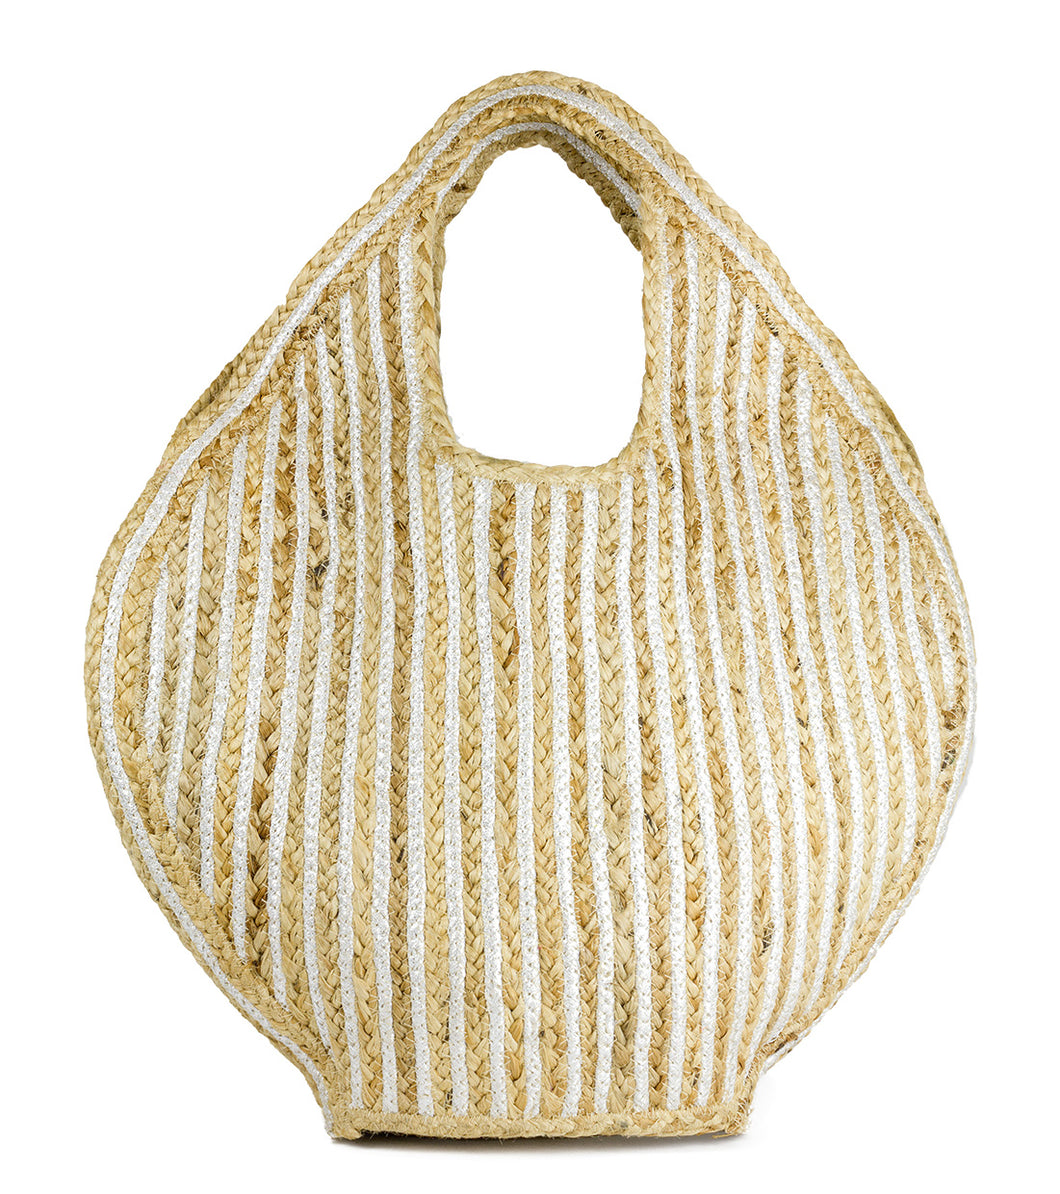 Oversized Striped Jute Beach Tote Bag - Just Jamie